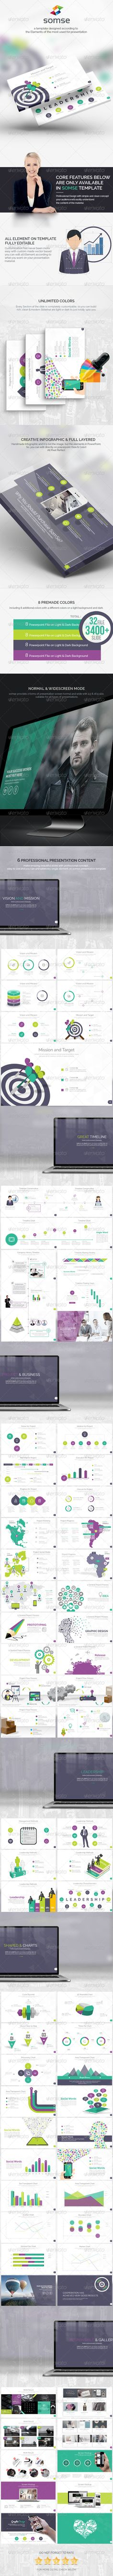 Somse - All in One Powerpoint Template